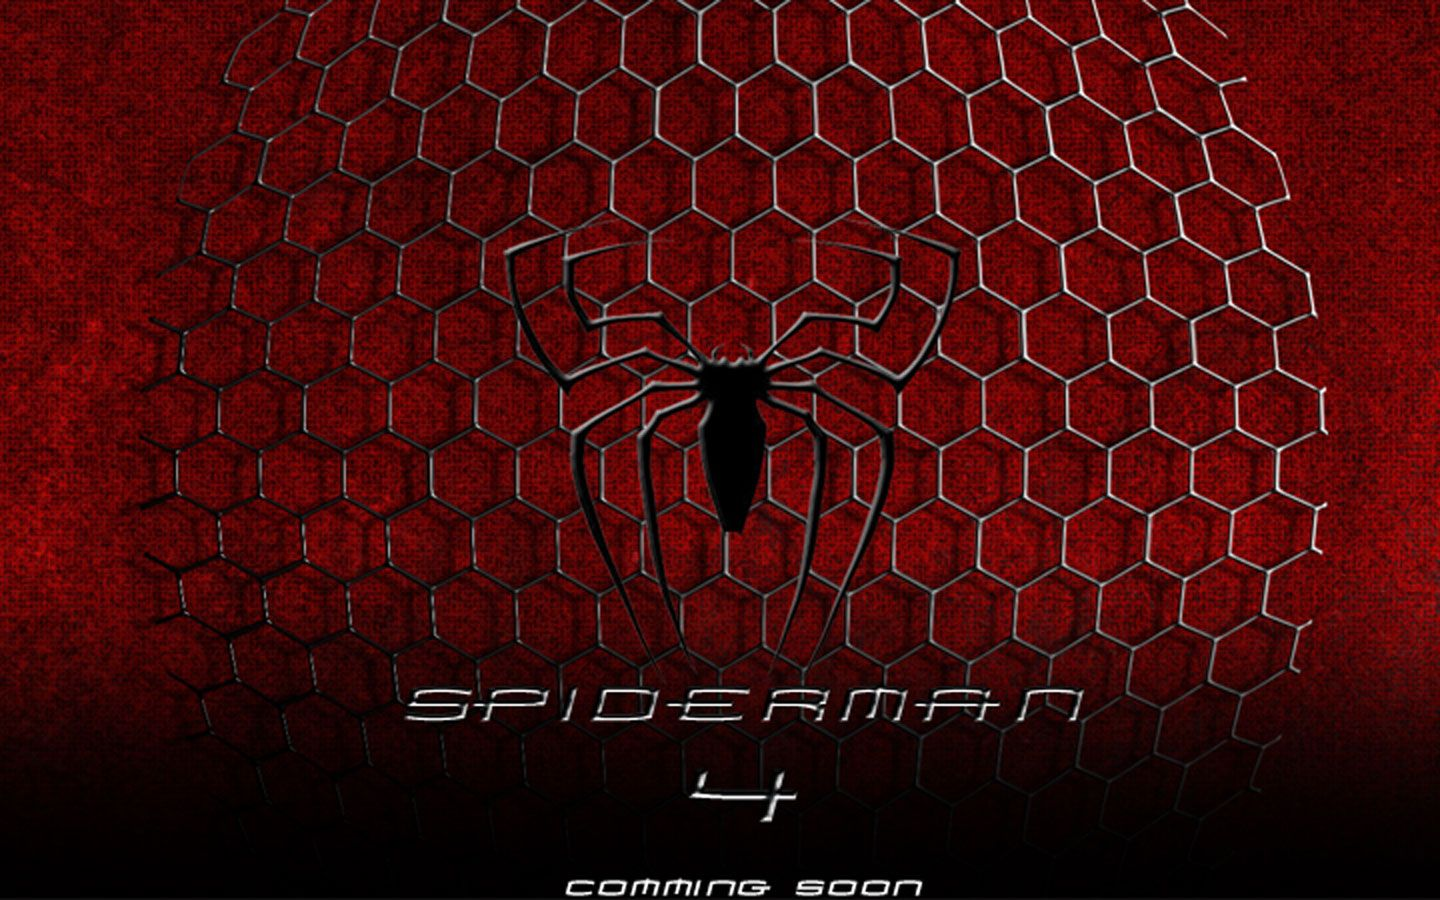 Spiderman 4 Wallpapers 1440x900